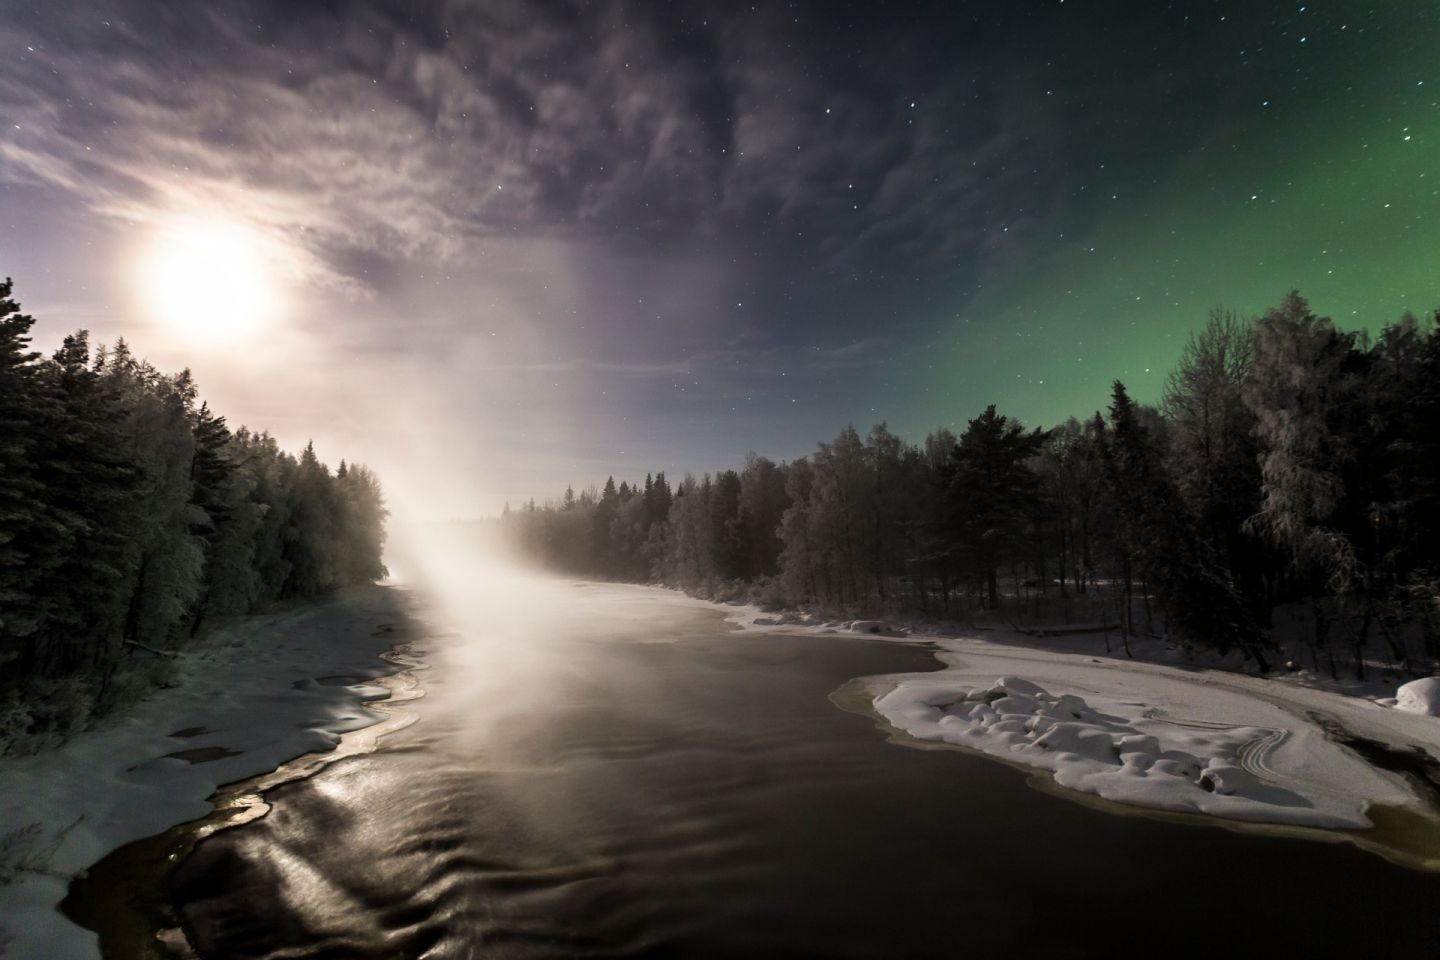 Northern Lights over a river in Finnish Lapland